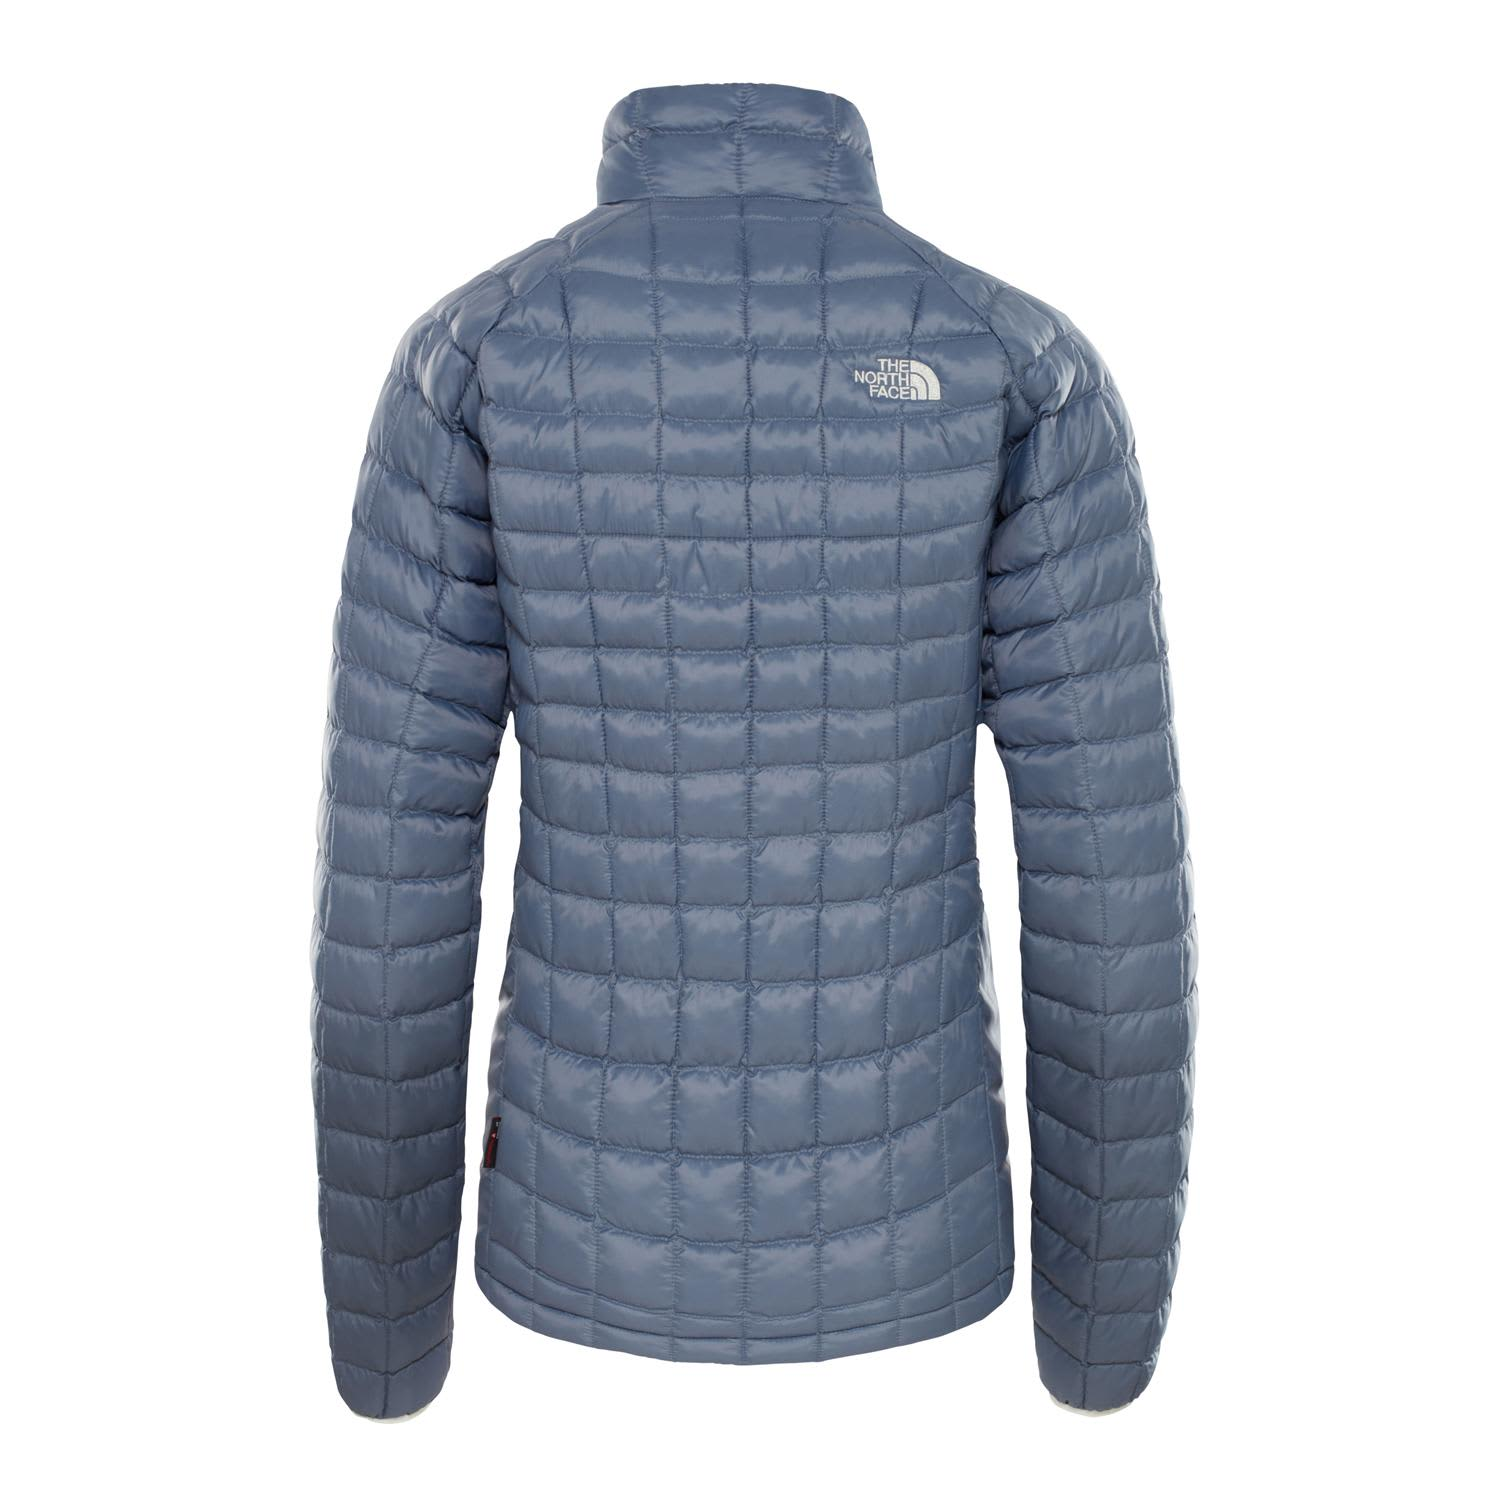 eeb519ea3 The North Face Women's Thermoball Sport Jacket